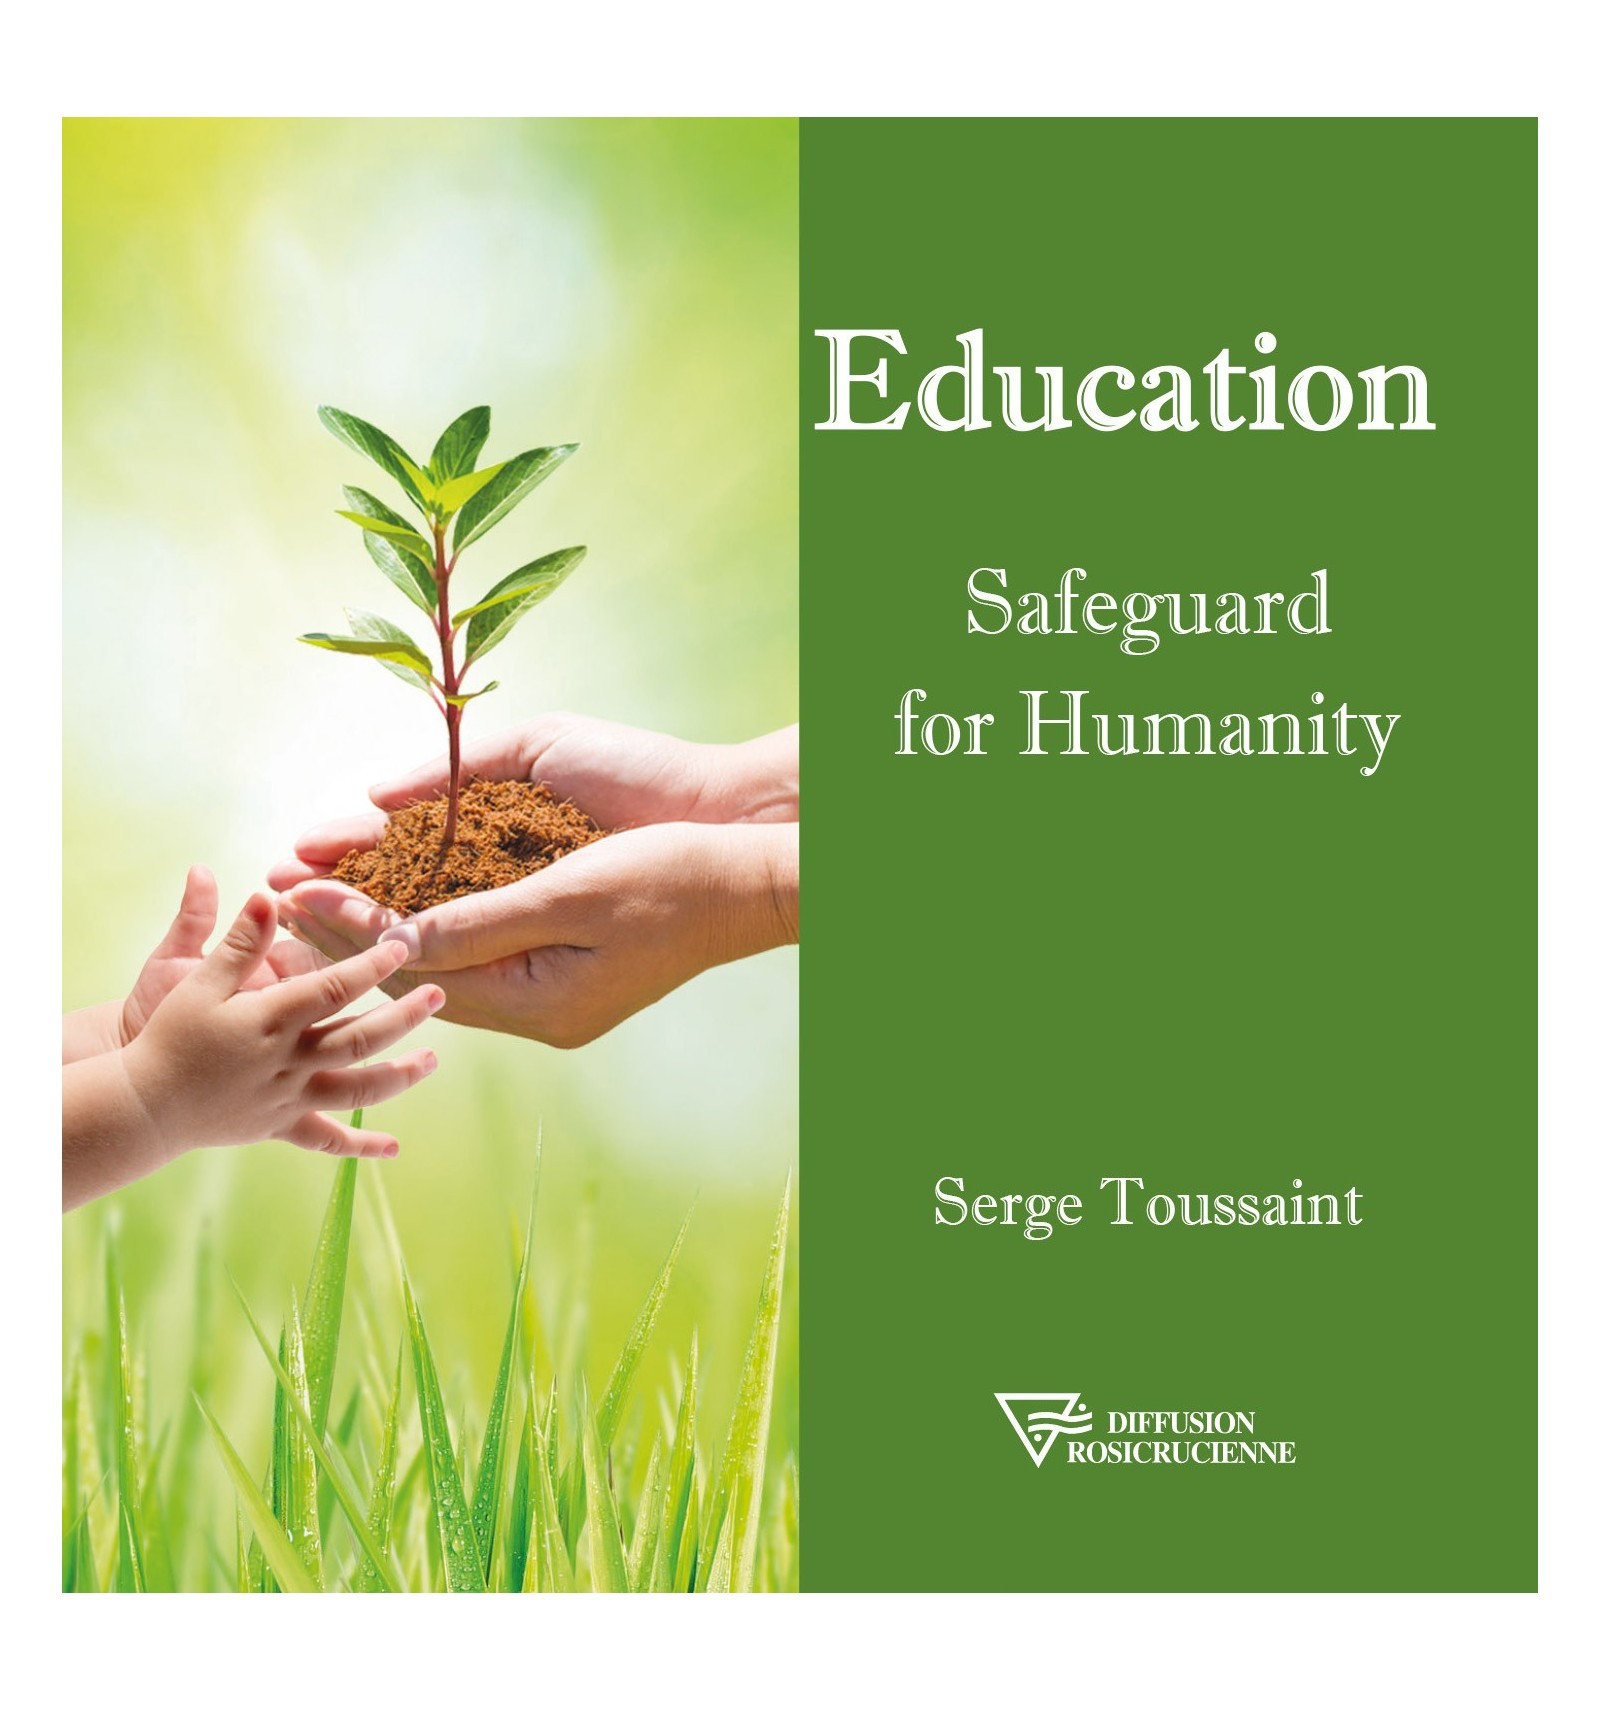 Education safeguard for Humanity Diffusion Rosicrucienne